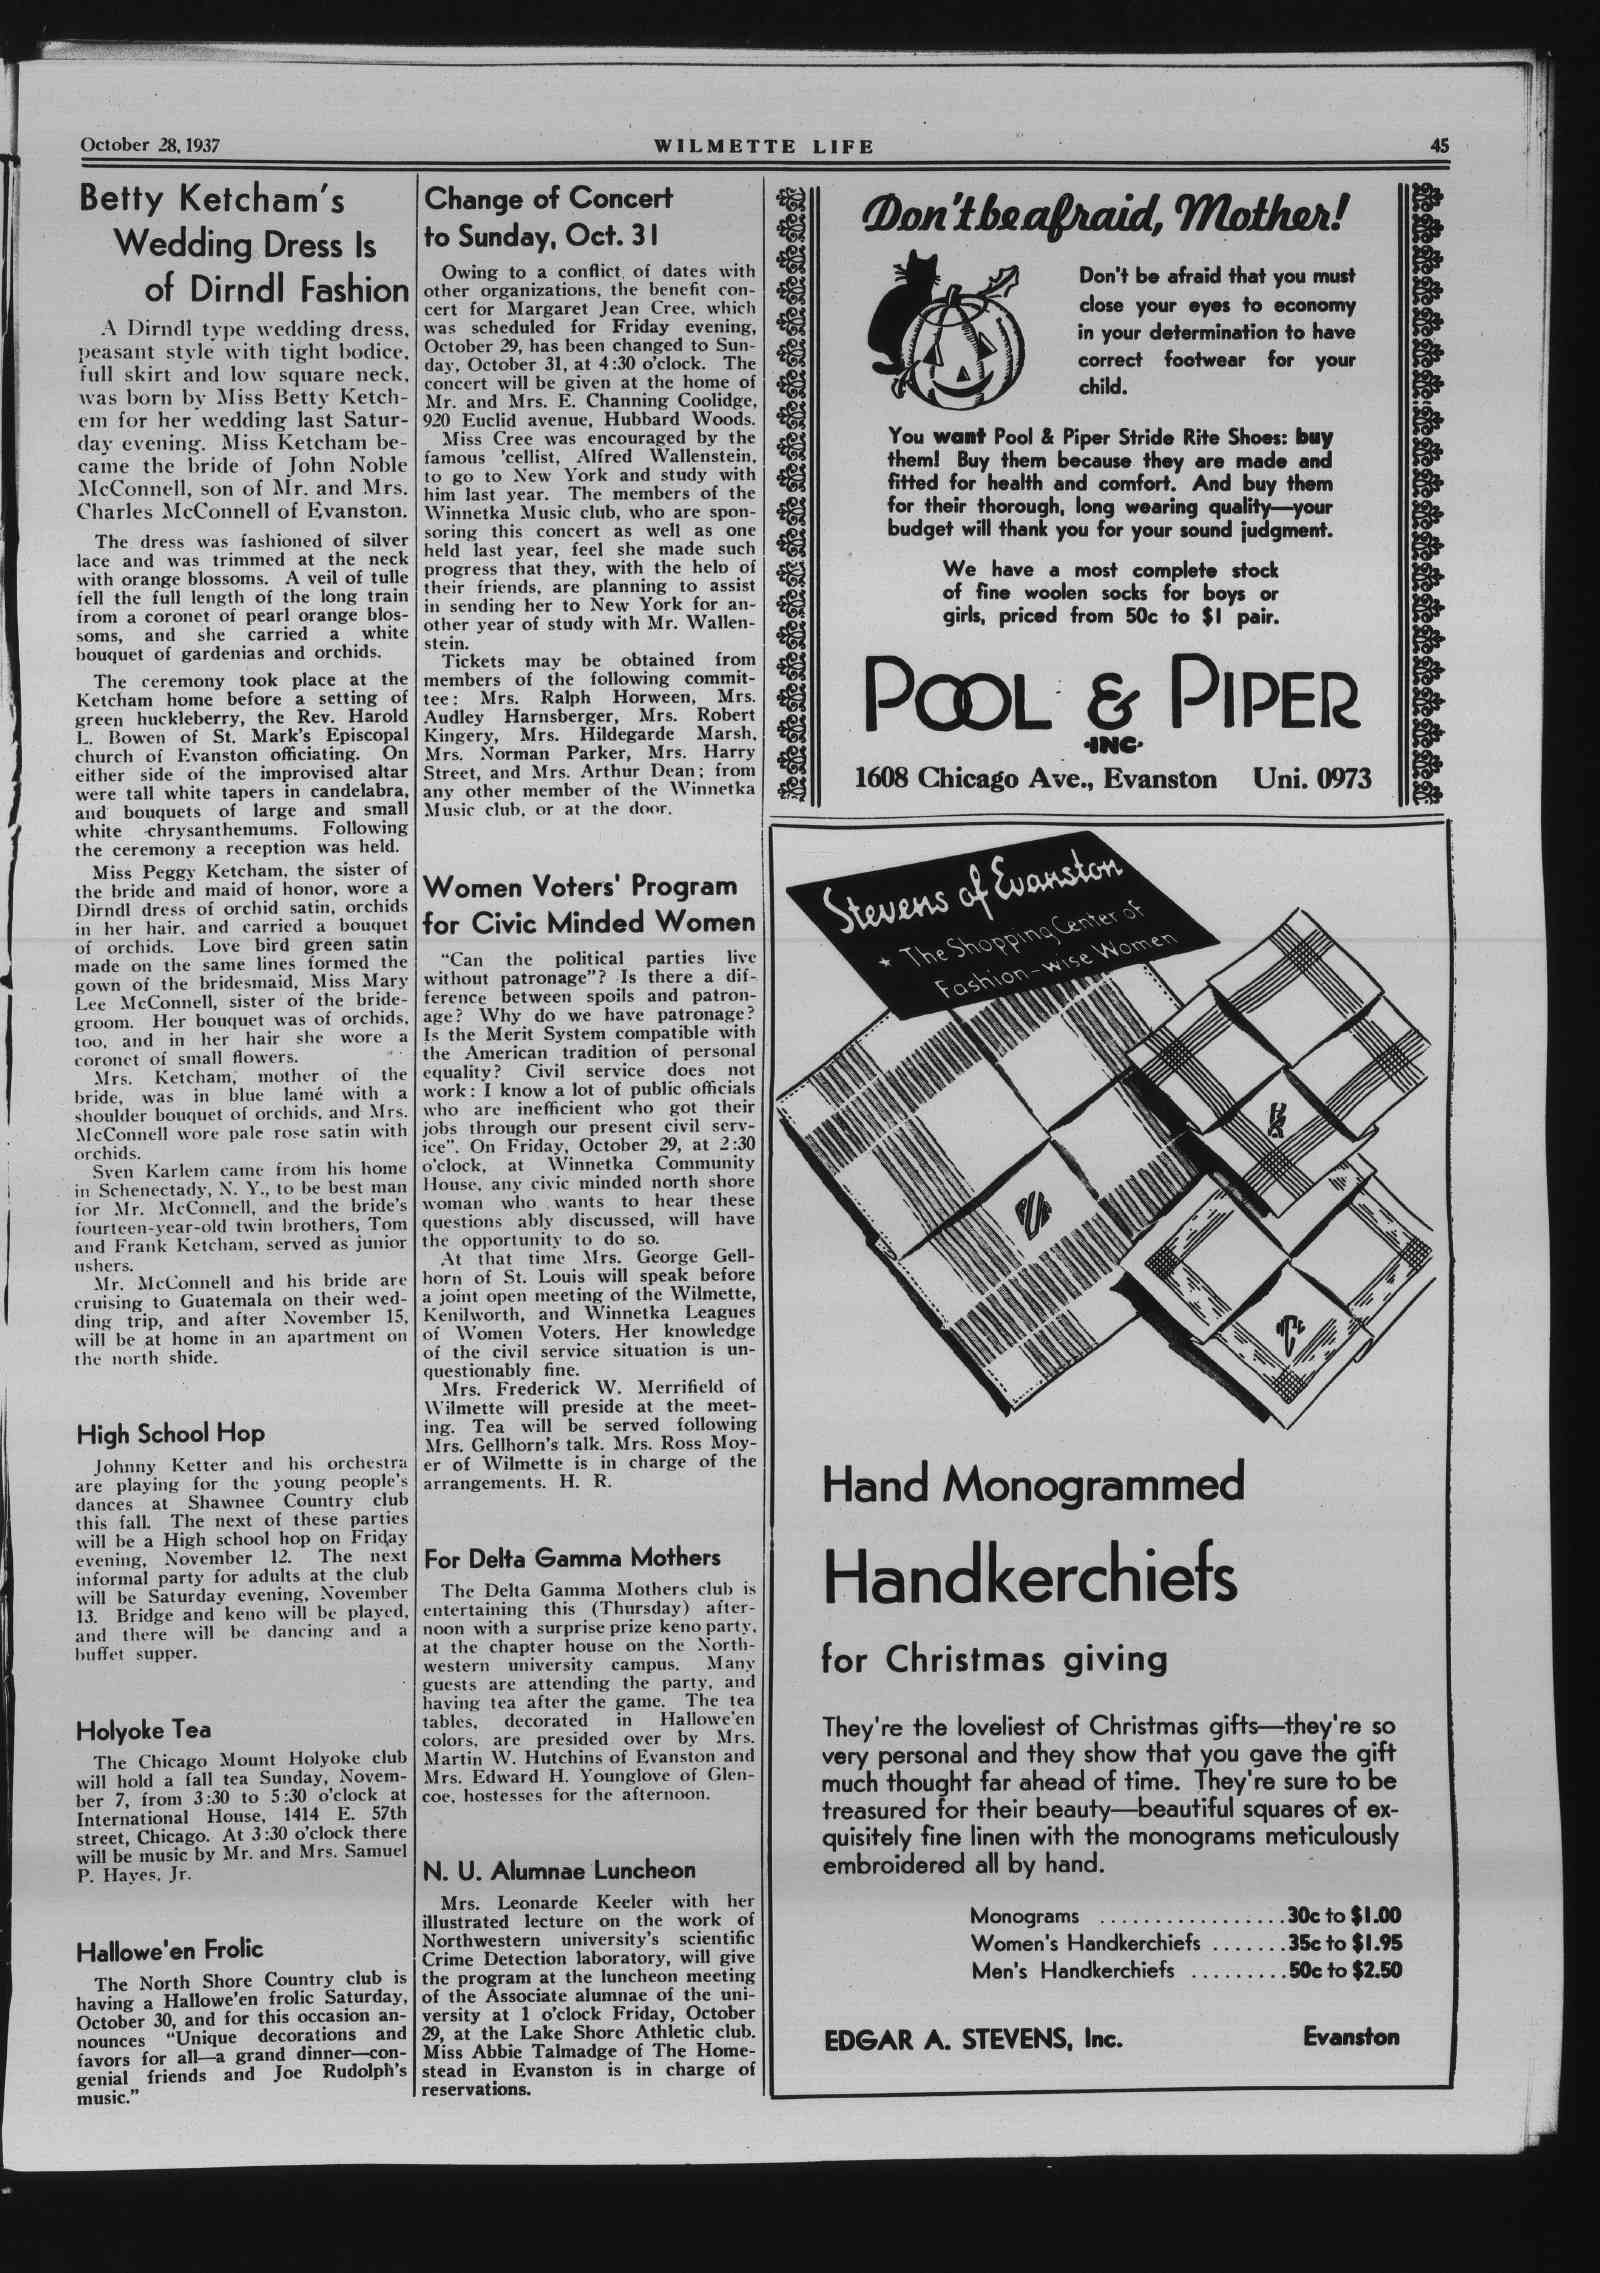 Wilmette Life (Wilmette, Illinois), 28 Oct 1937